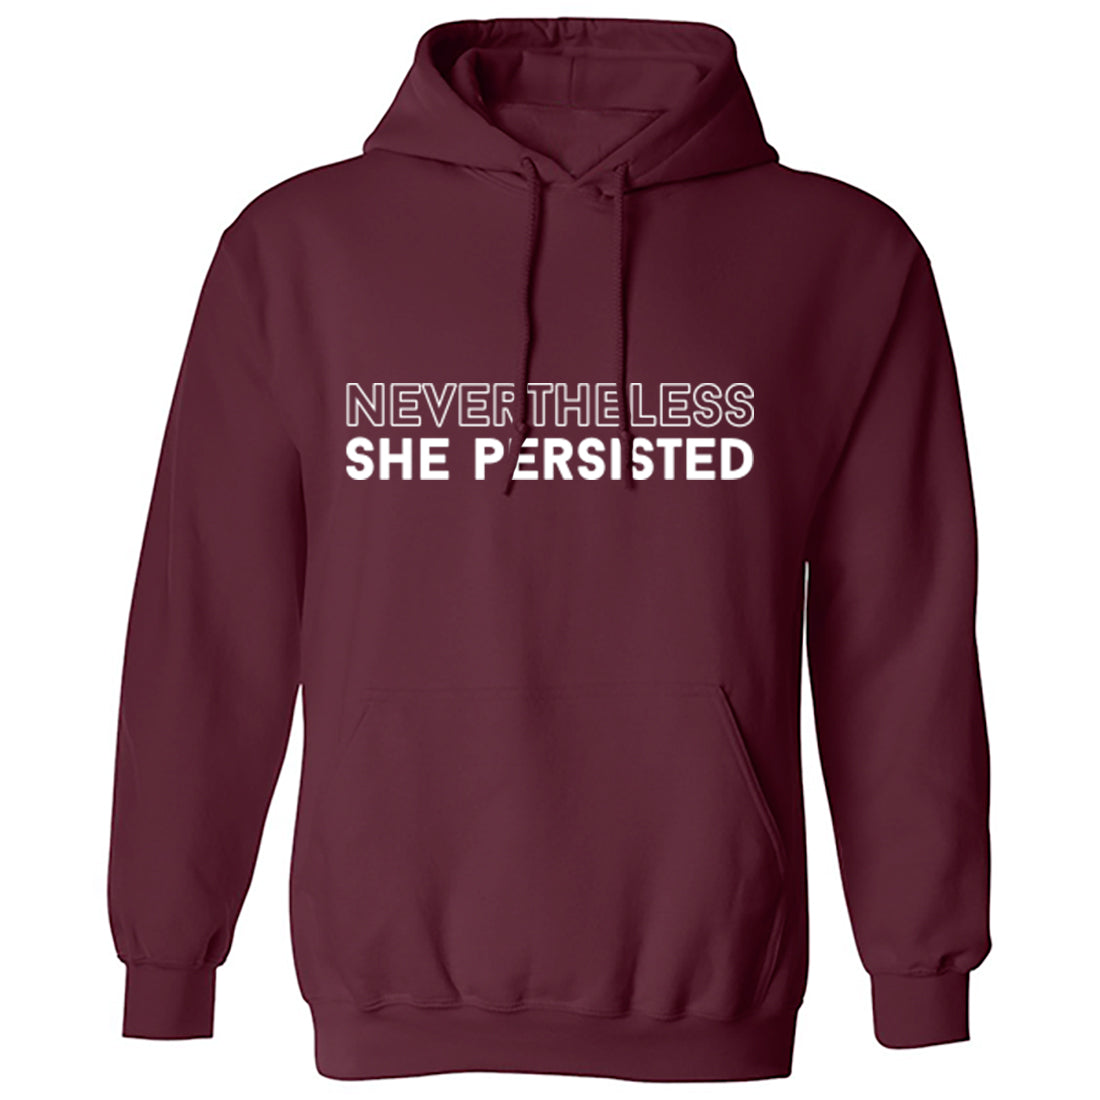 Nevertheless She Persisted Unisex Hoodie K1435 - Illustrated Identity Ltd.